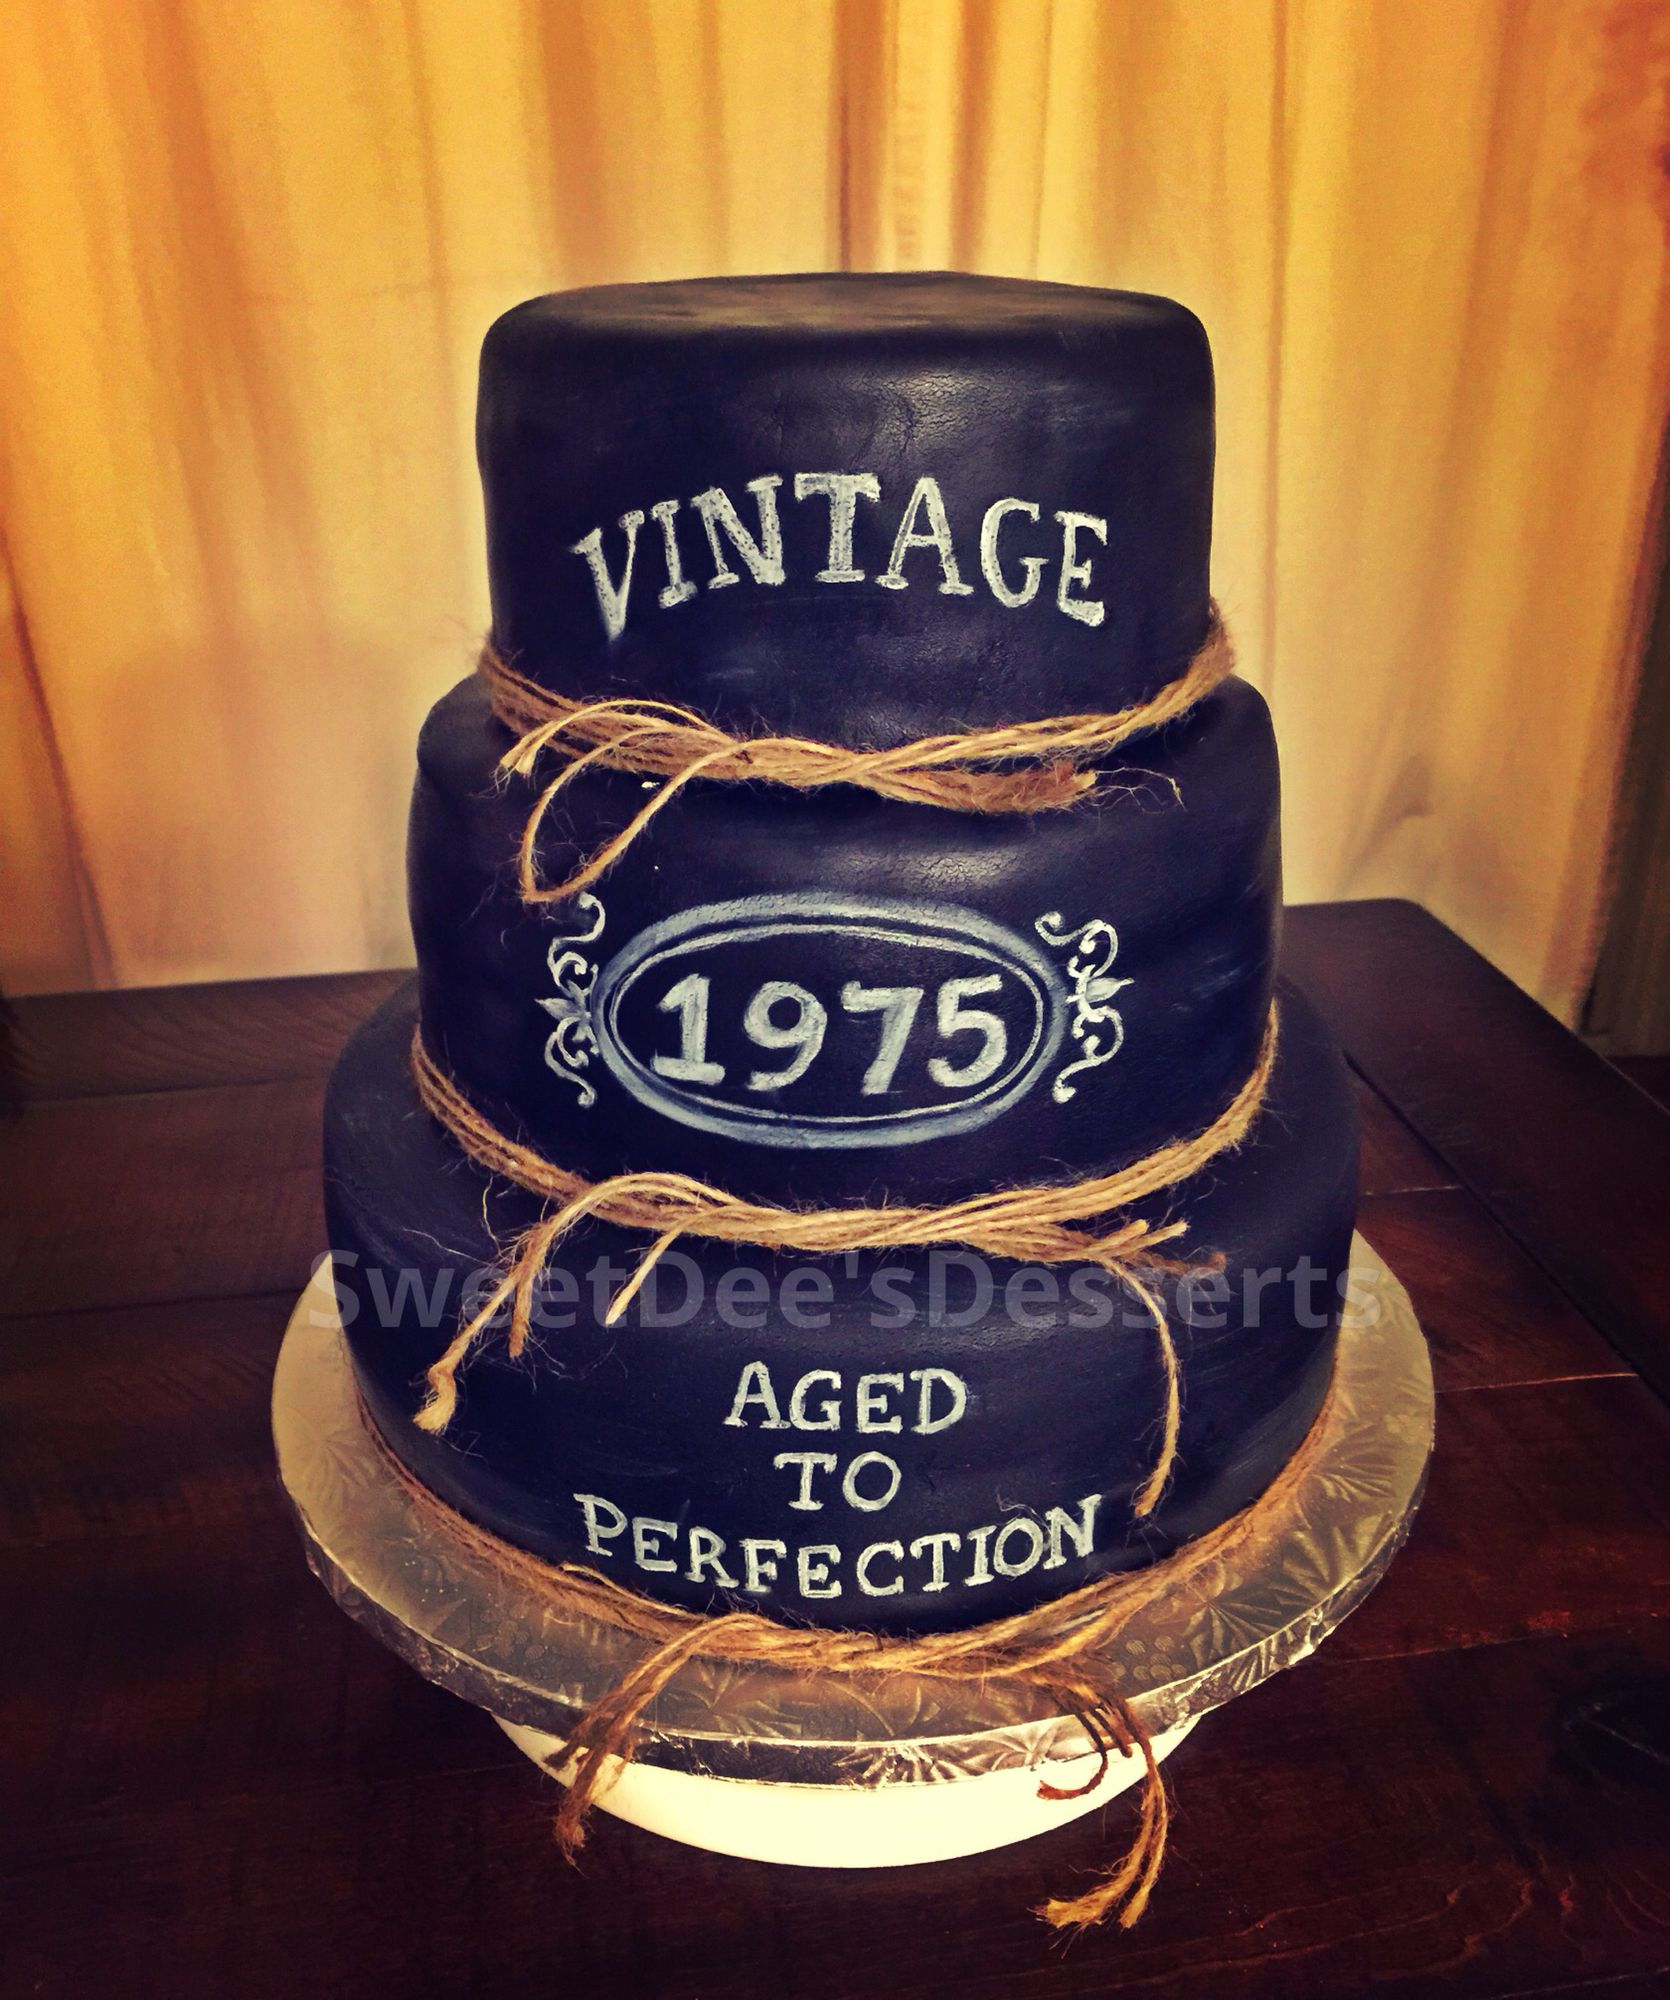 Vintage Whiskey 40th Aged To Perfection Cake Party Over